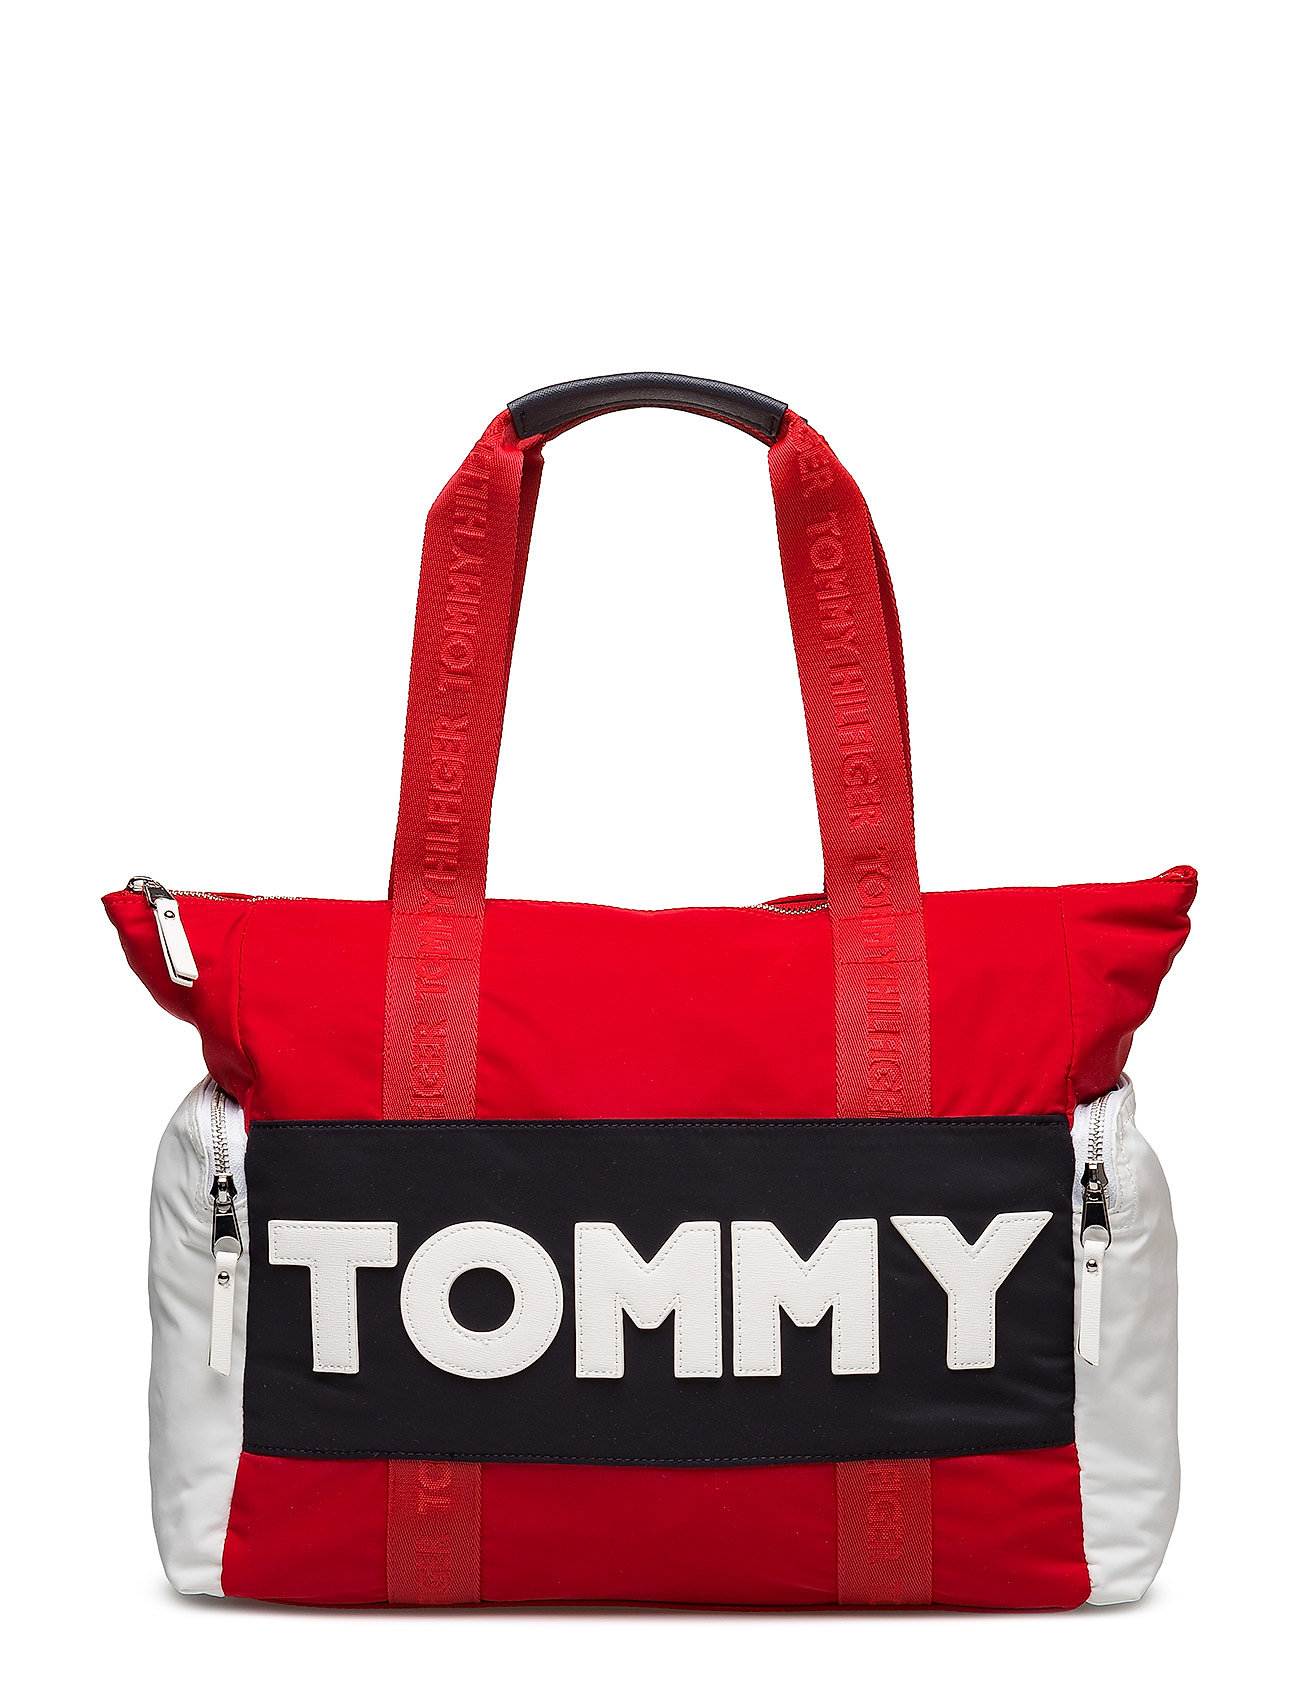 Tommy Hilfiger Laukut Miehet : Tommy nylon tote corporate cb